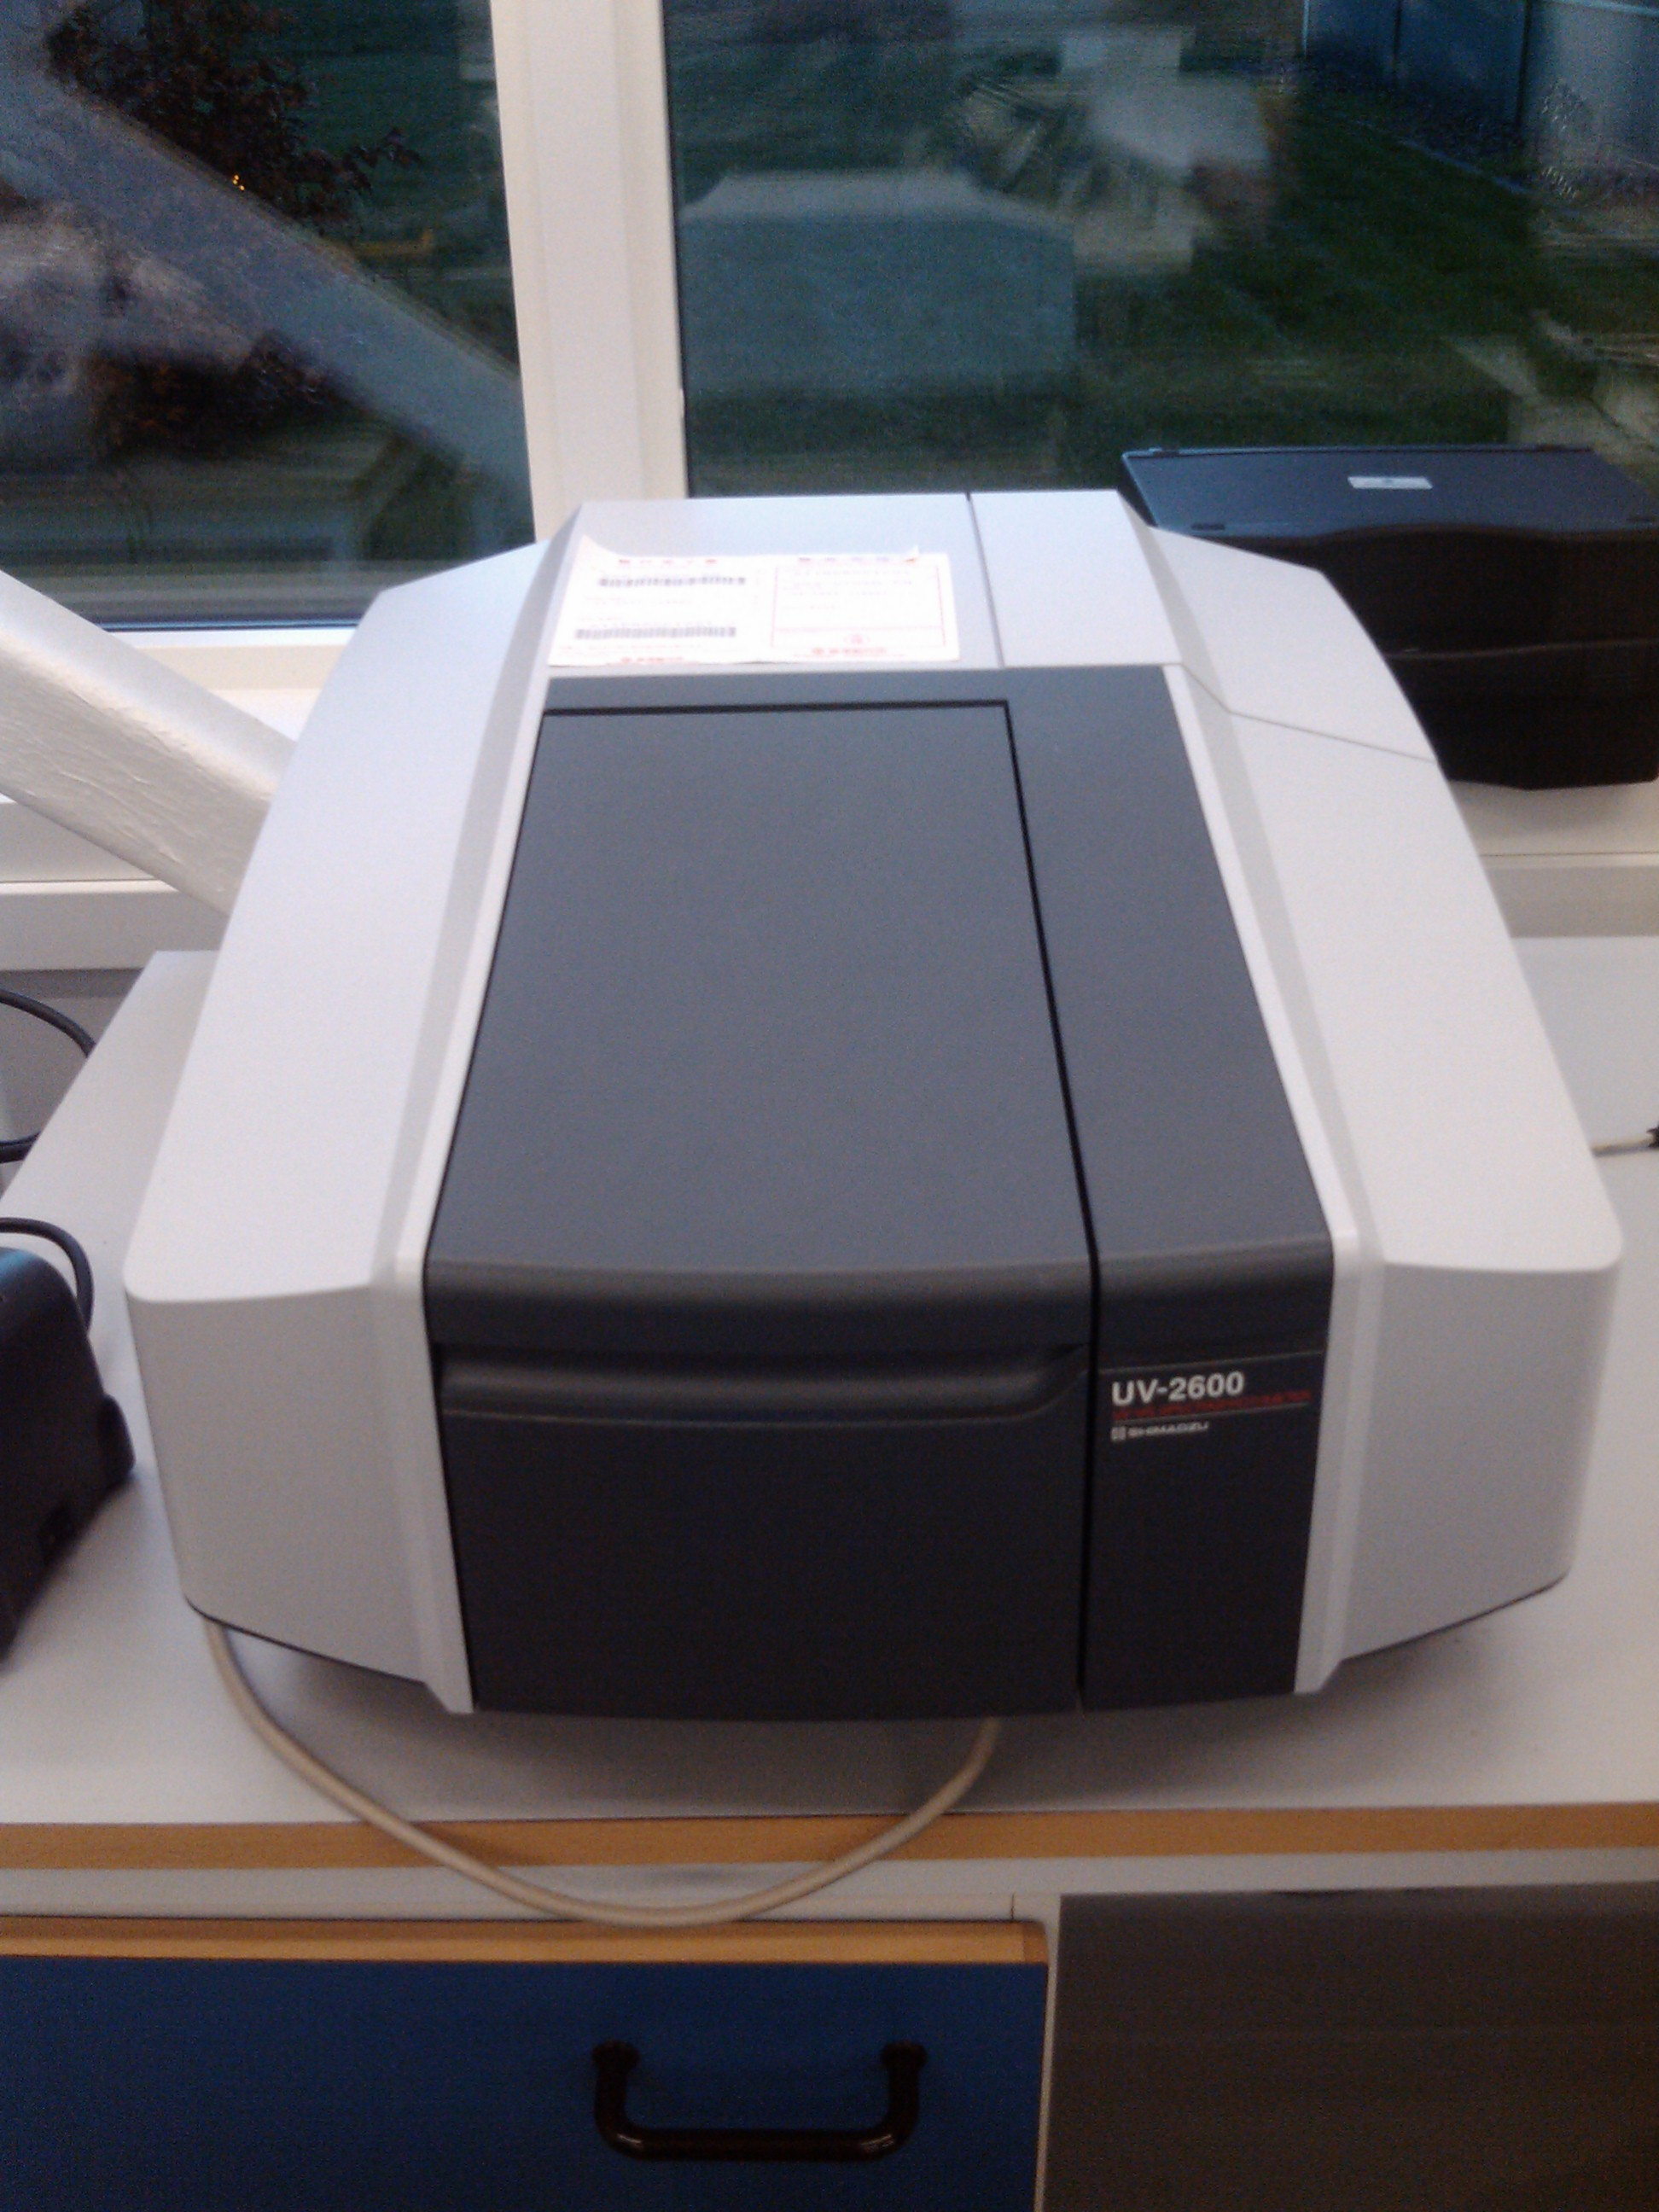 Picture of UV Photospectrometer, Shimadzu